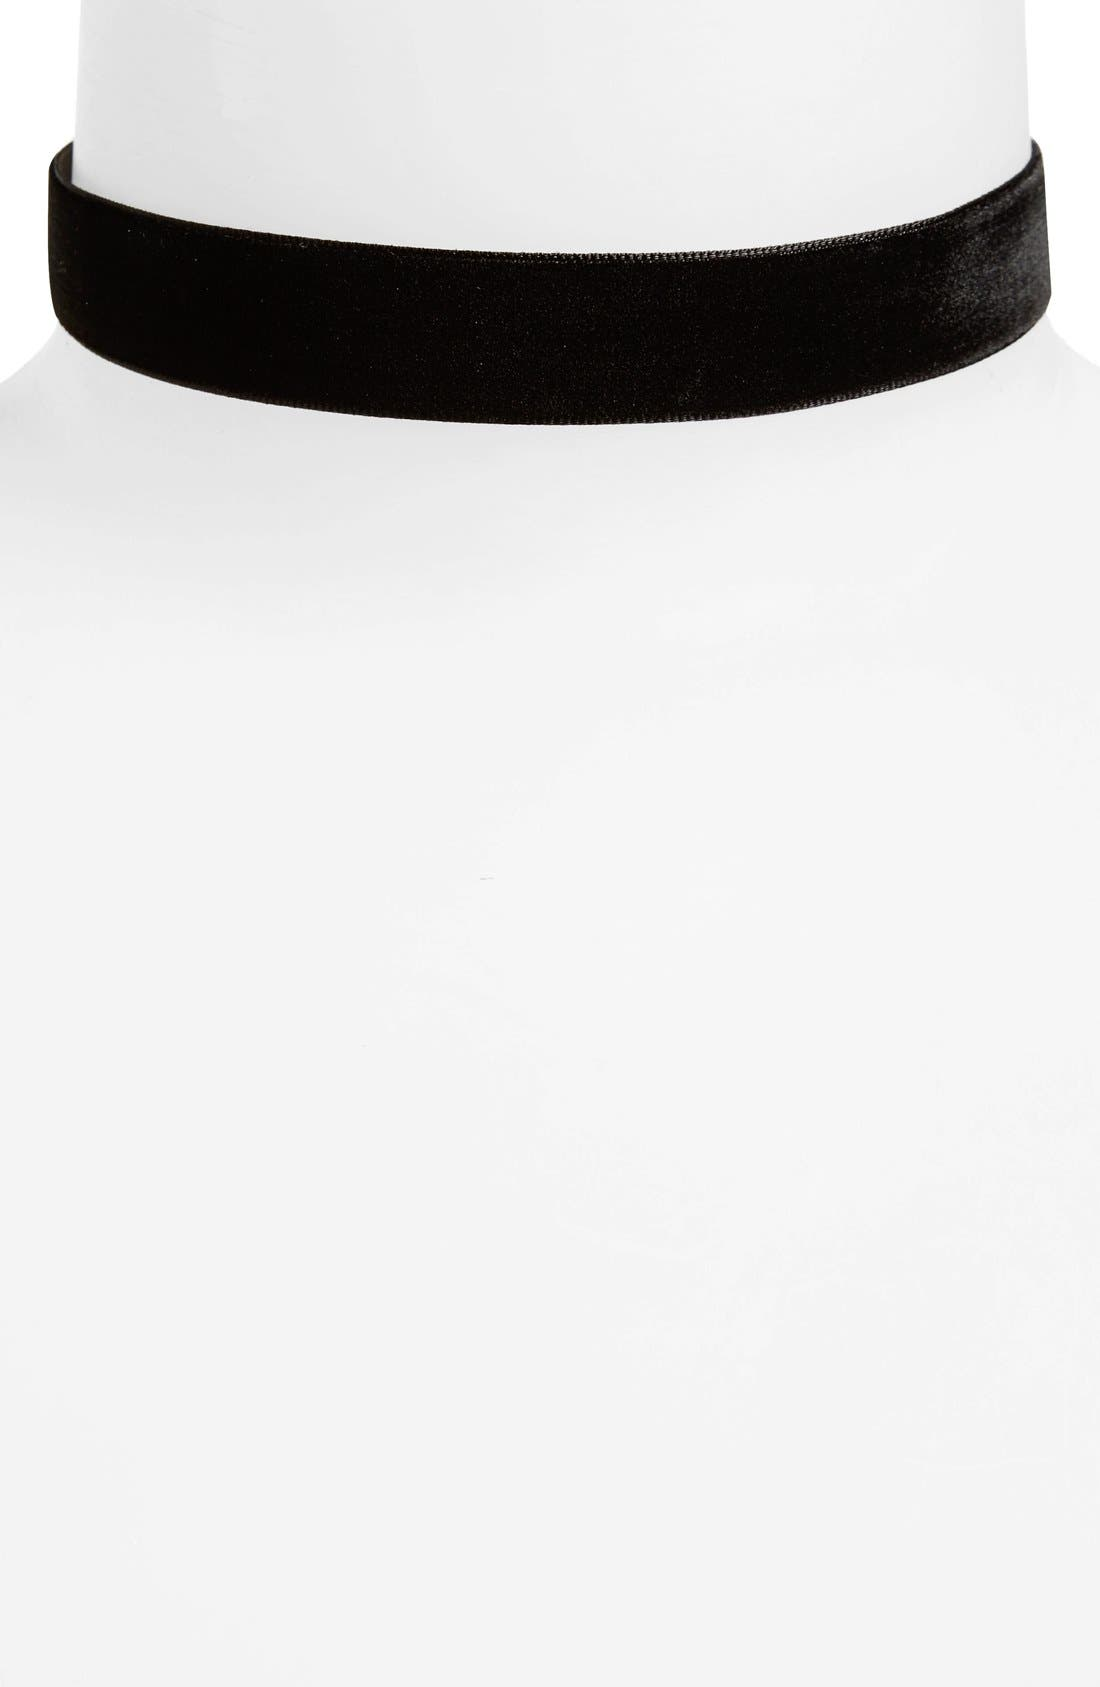 Alternate Image 1 Selected - Topshop 'Thick and Thin' Velvet Chokers (Set of 2)